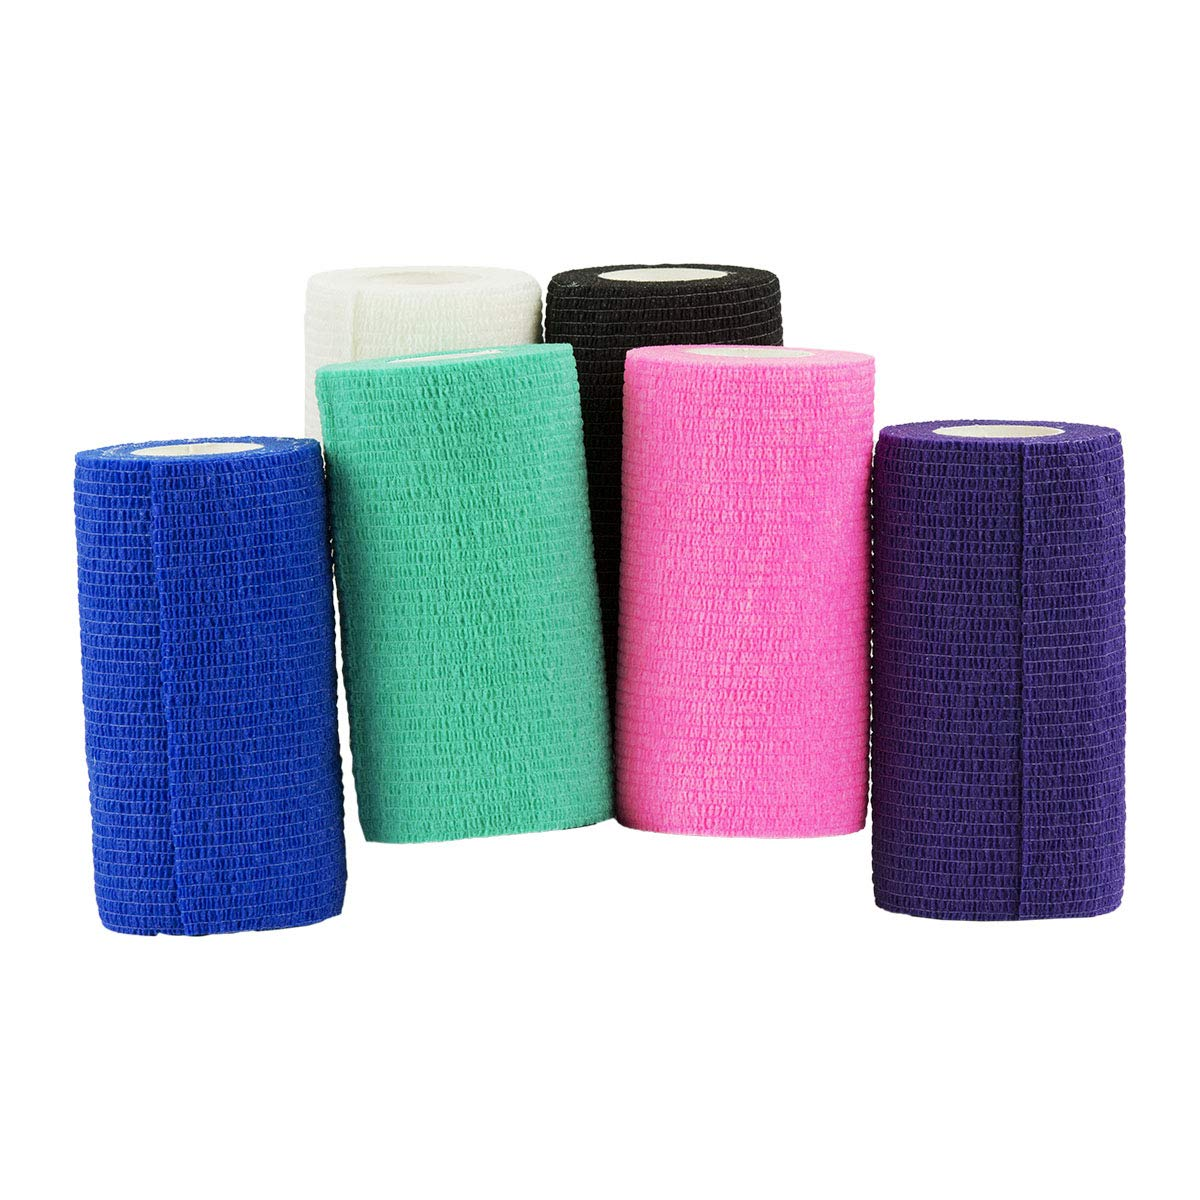 BOCCS Cohesive Flexible Bandage, 4'' x 5yds, Box of 100, First Aid Vet Tape, Assorted Colors, Equine, Veterinary & Multi-use